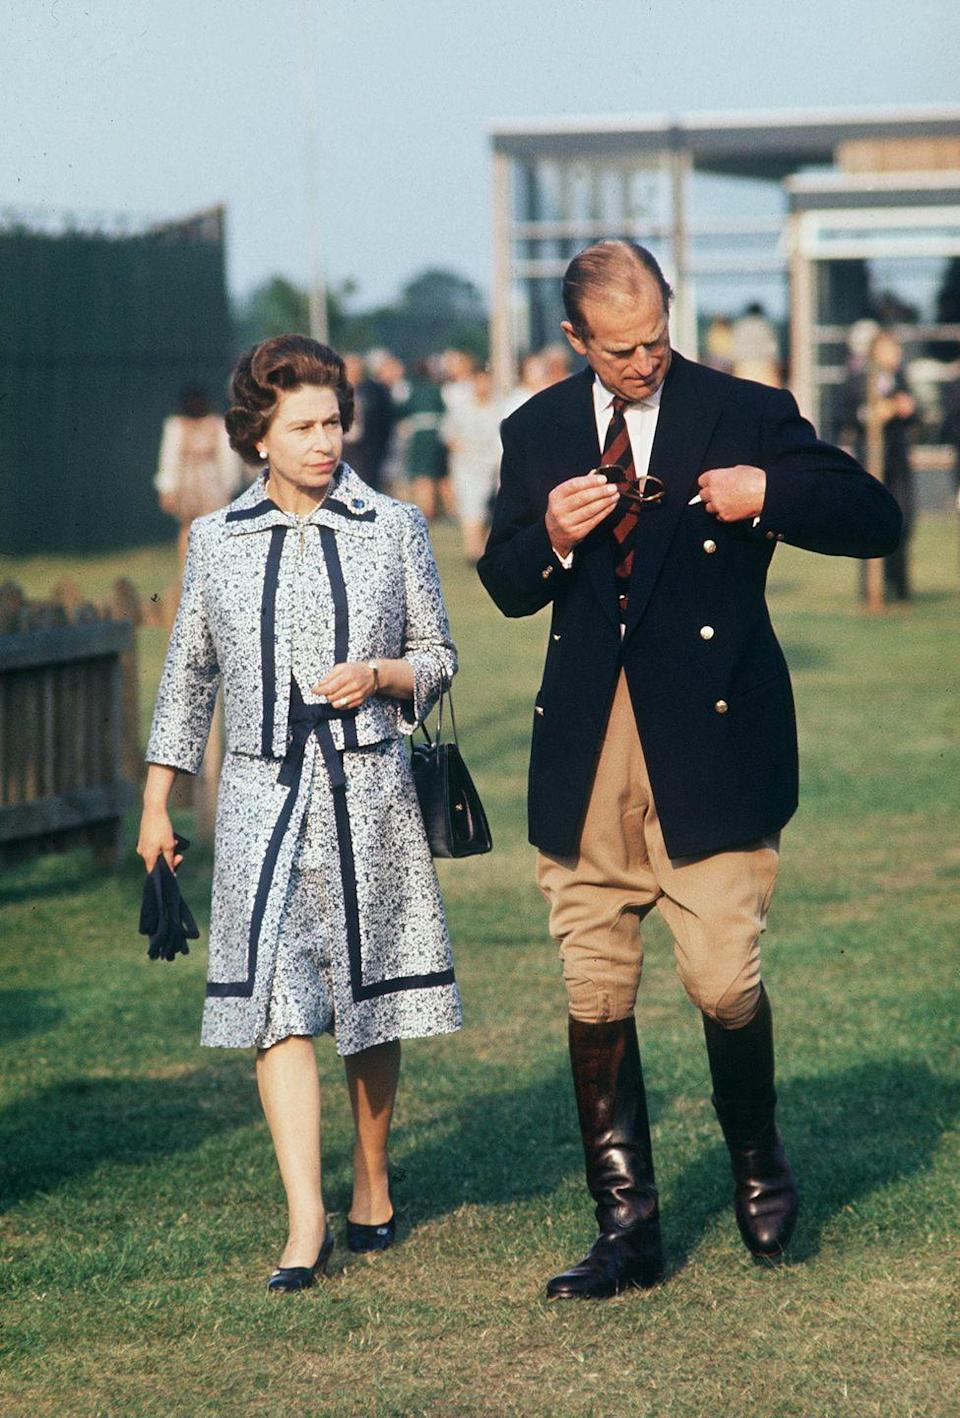 <p>In 1975, Prince Philip appeared at the Guards Polo Club wearing a double breasted navy topper fit for the sport. </p>